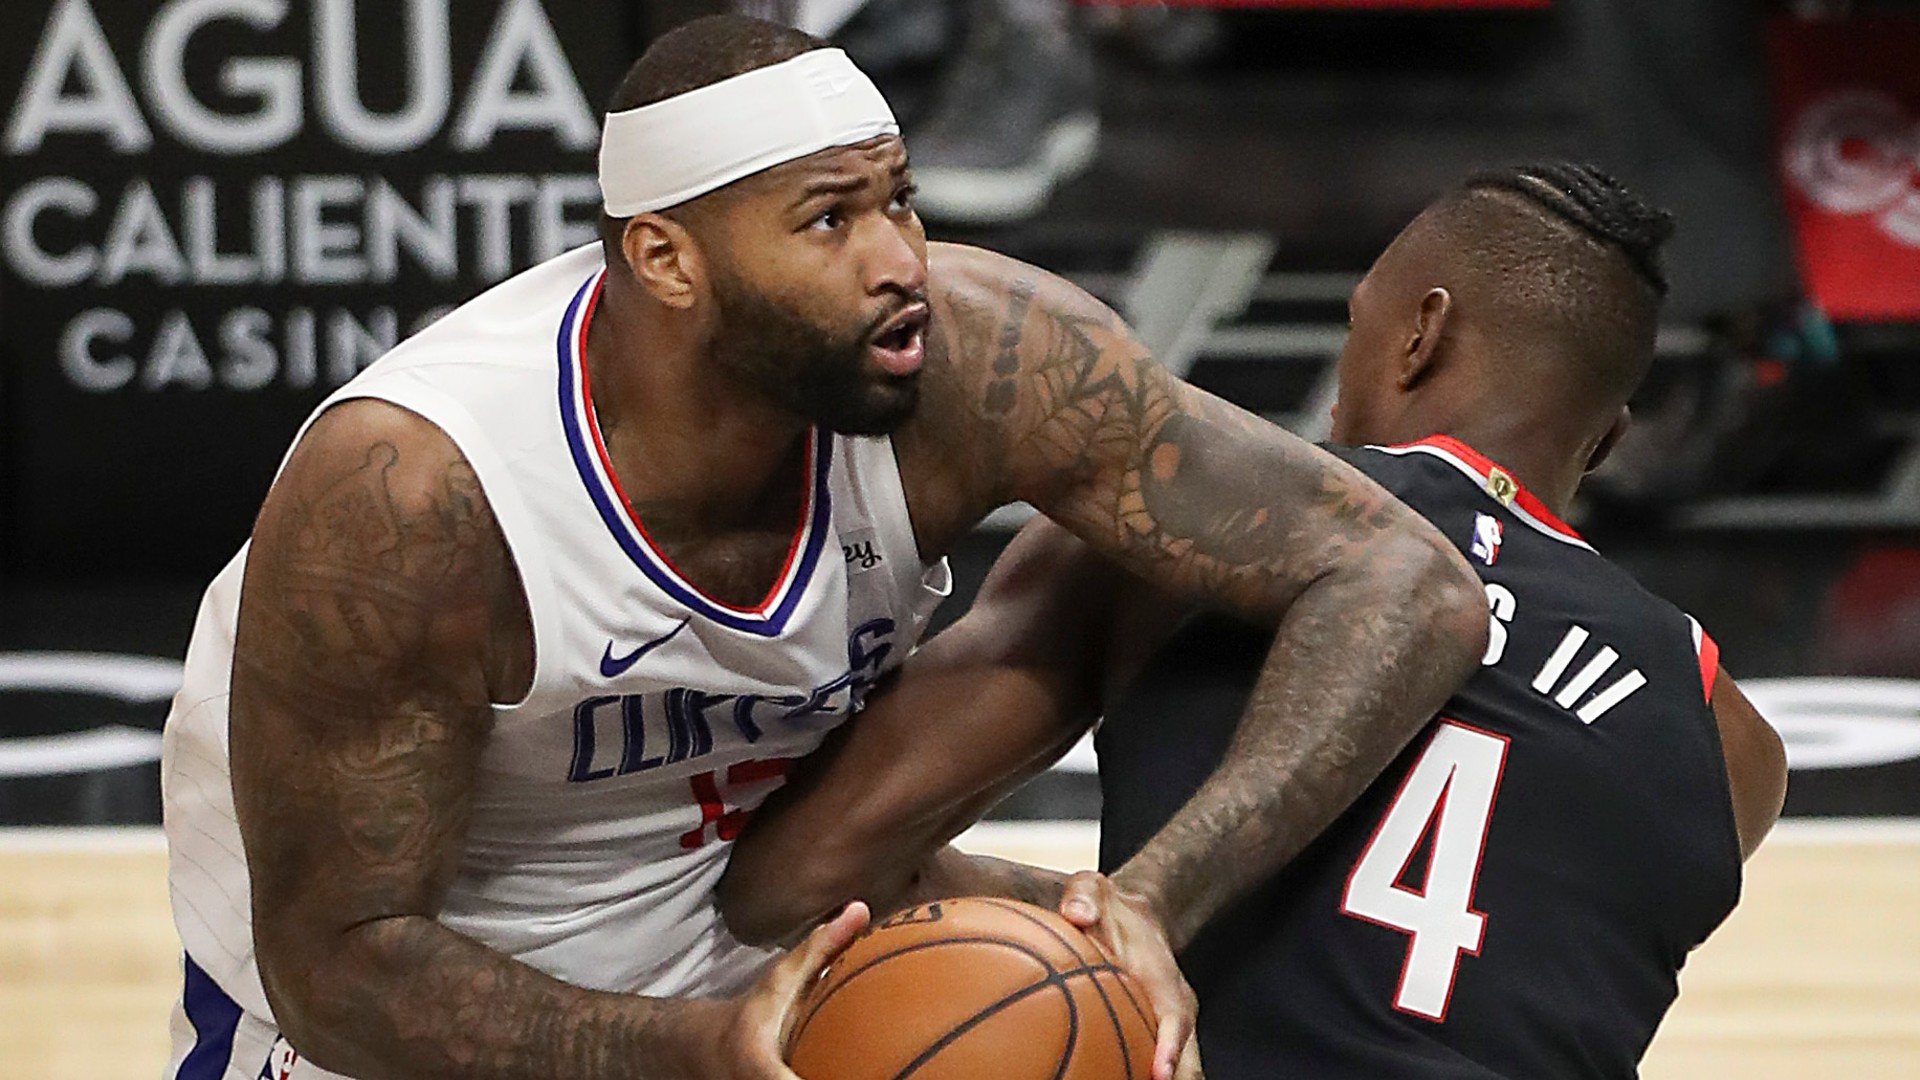 Center DeMarcus Cousins is determined to show he can still play at the highest level during his time with the Los Angeles Clippers